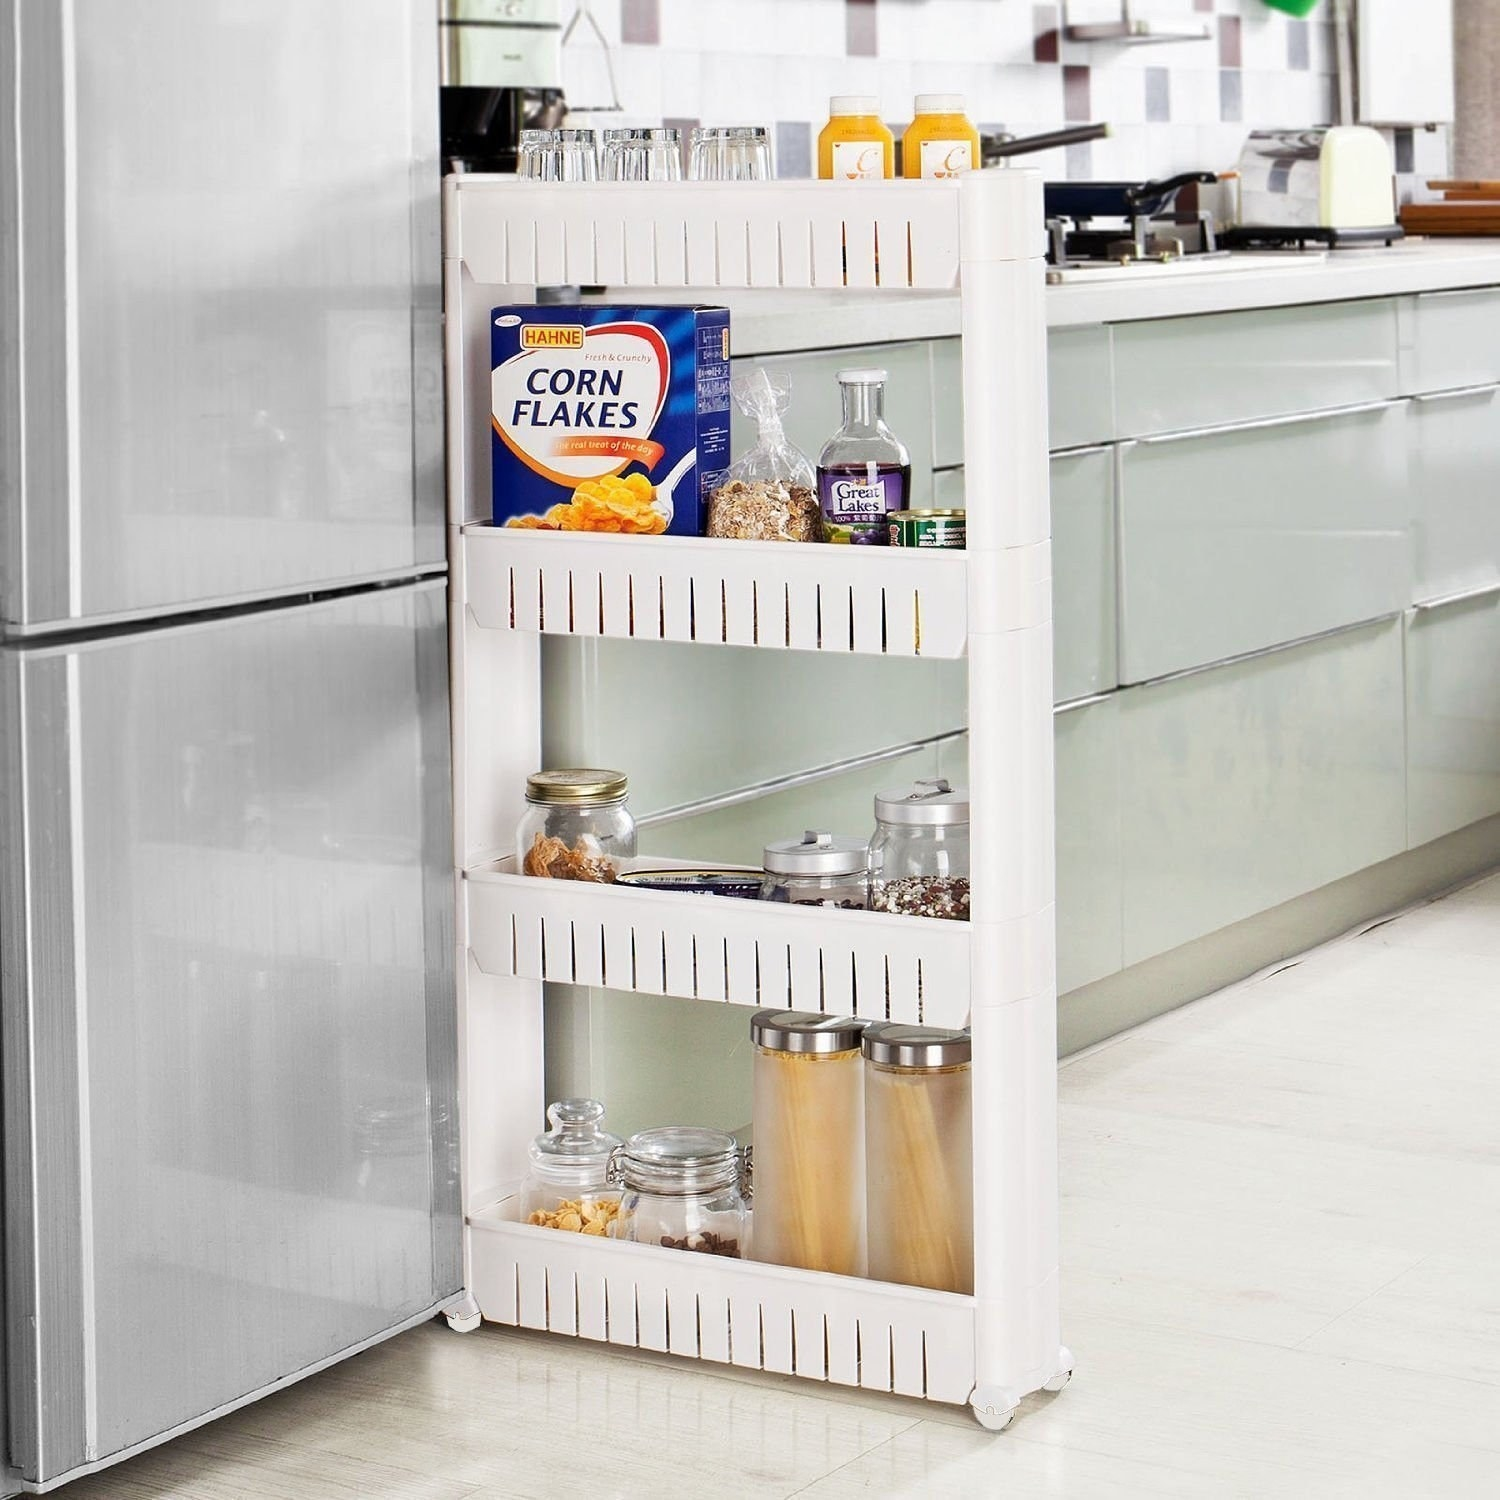 A white storage rack with food items in it being wheeled into a small space